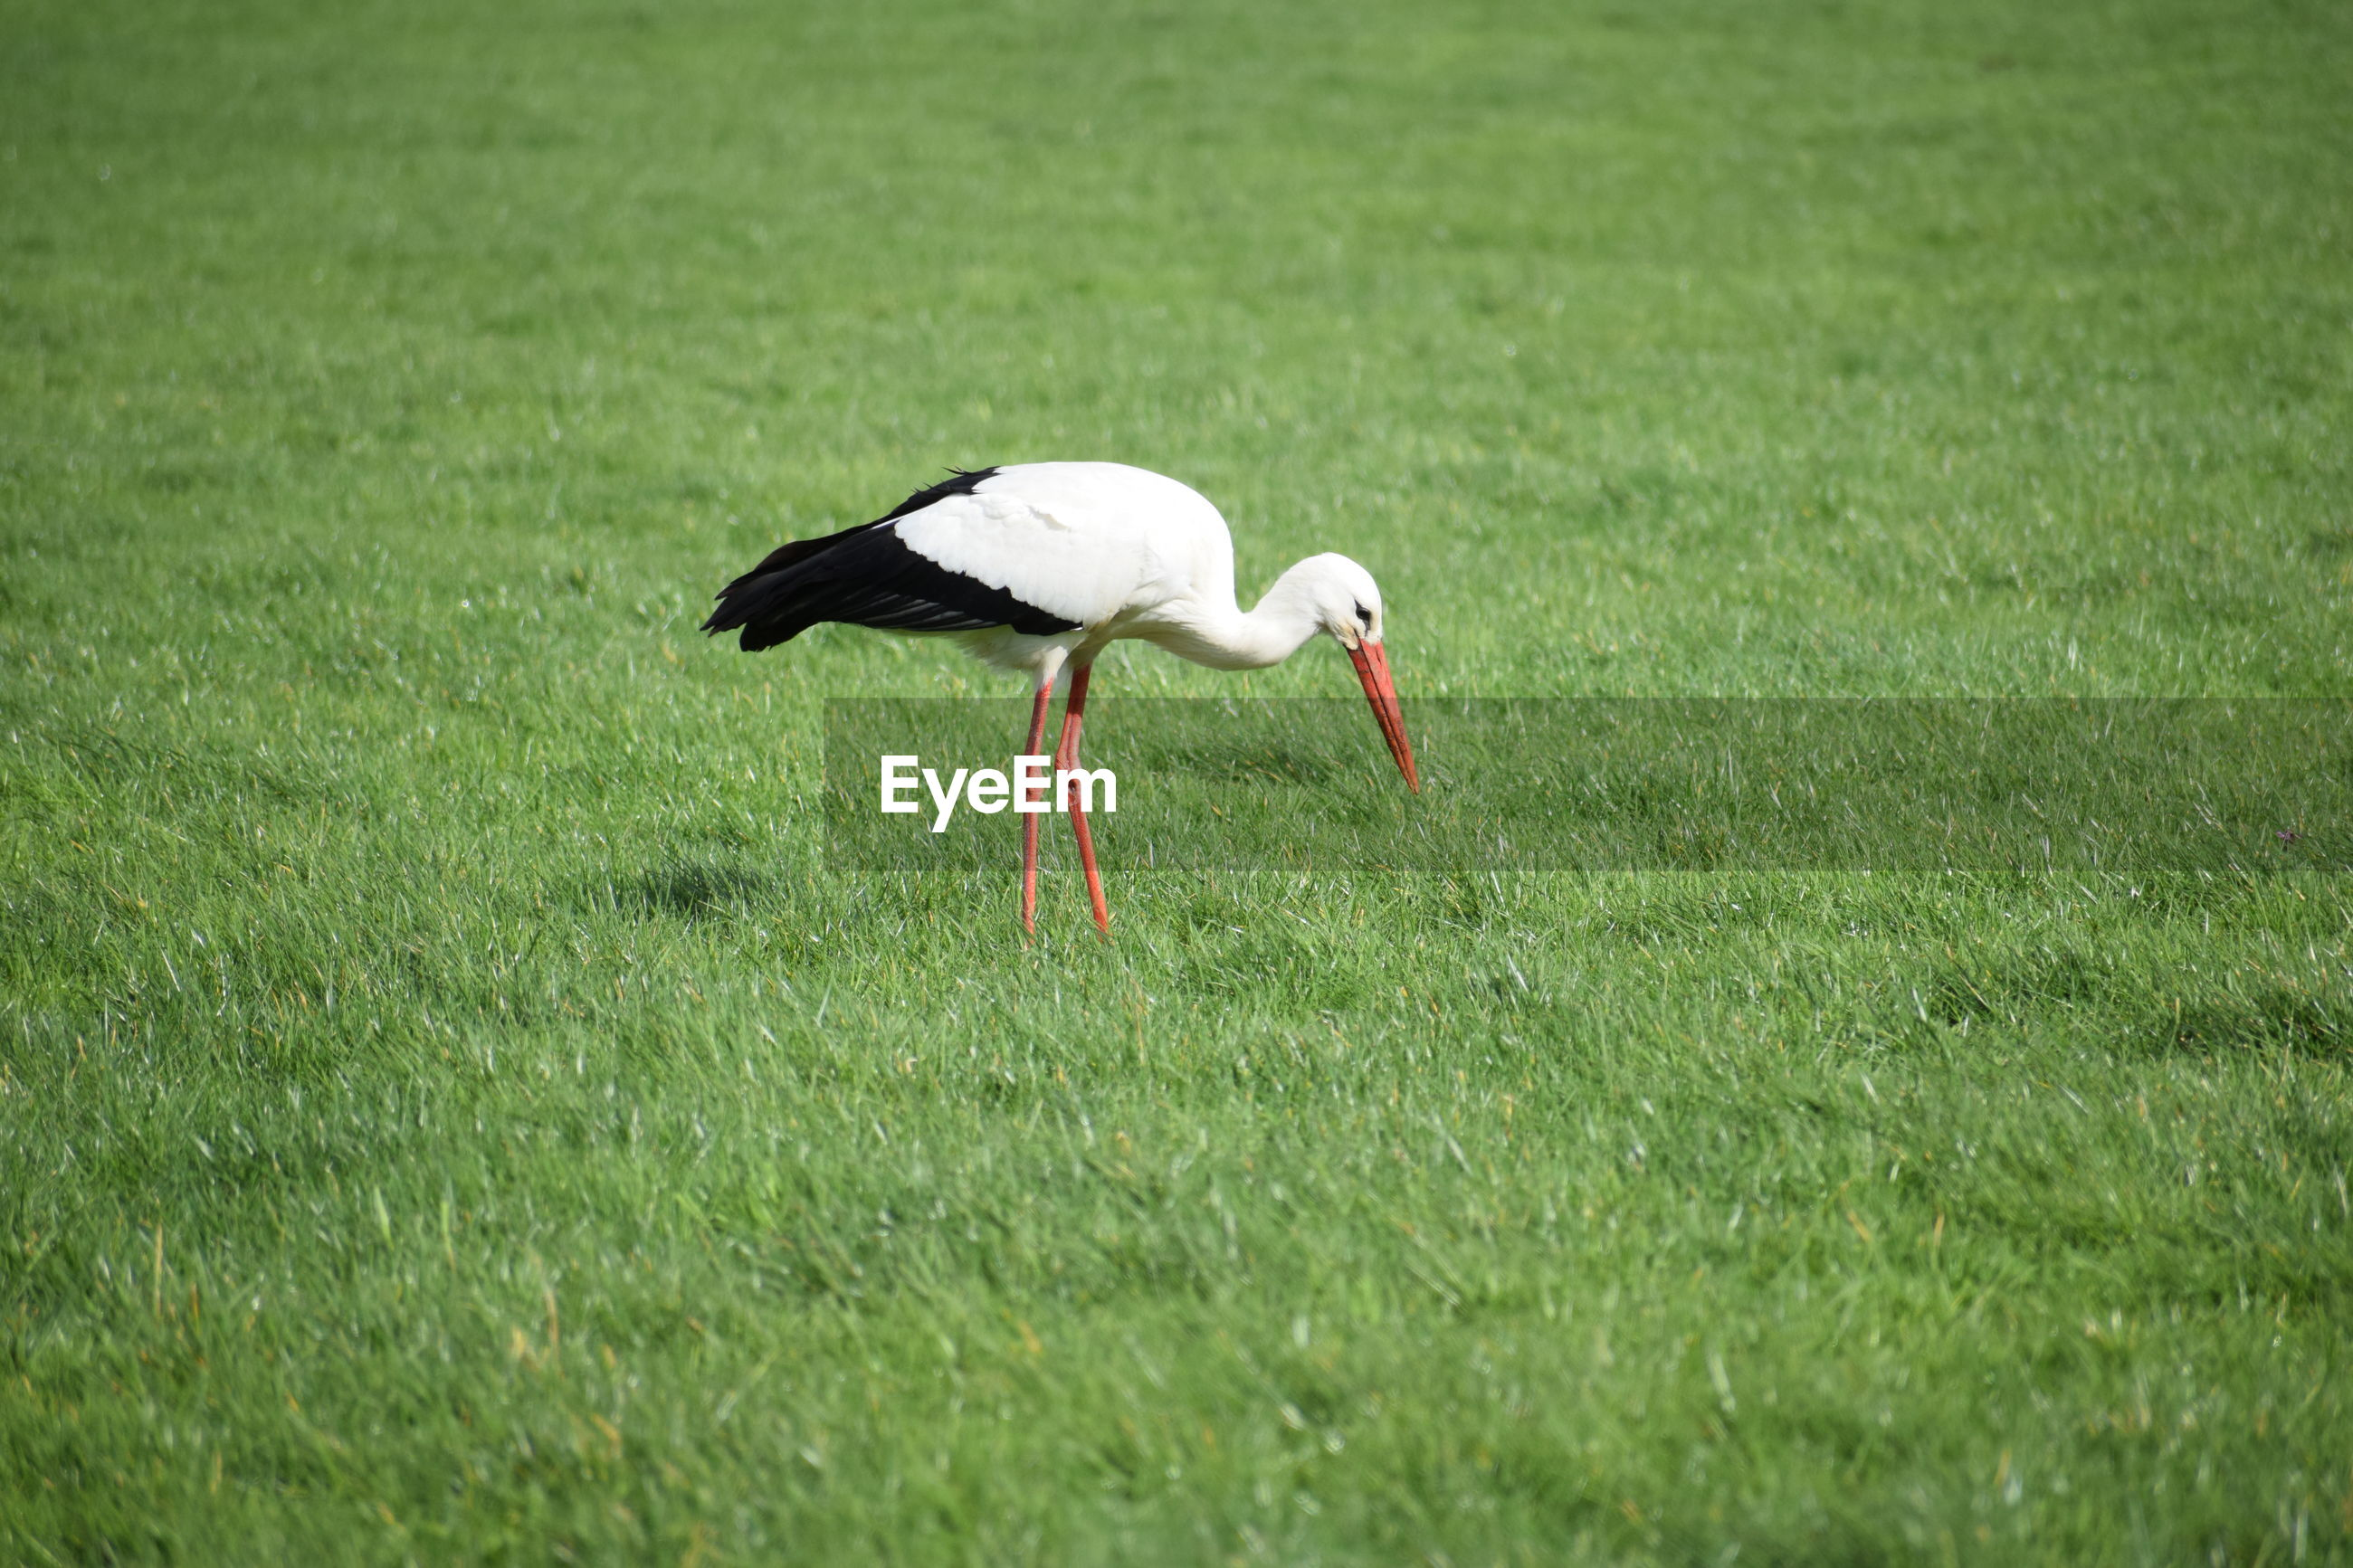 stork / ooievaar Grass Animals In The Wild Animal Animal Wildlife Bird Animal Themes Vertebrate Plant One Animal Green Color Field No People Day Nature Land Selective Focus Stork Side View Outdoors White Stork Storm Cloud Ooievaar